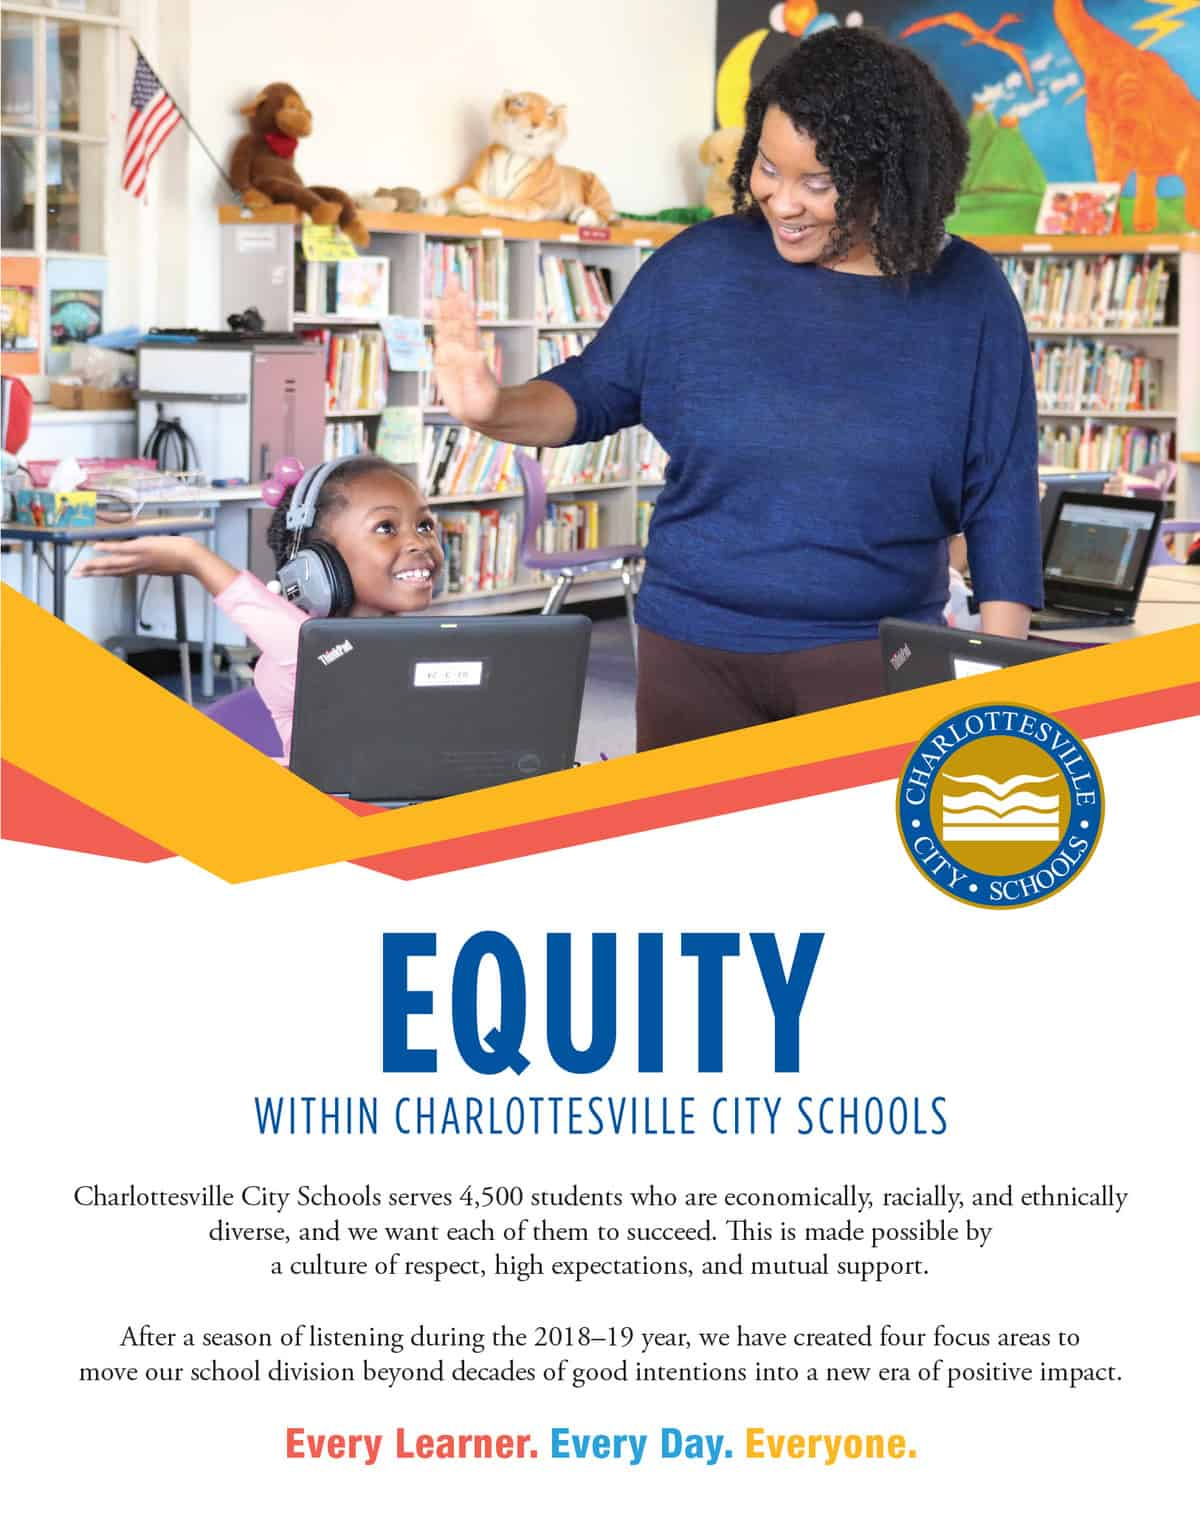 Equity overview. Find a four-page pdf showing this content at link below, by clicking on this image, or here: http://charlottesvilleschools.org/wp-content/uploads/2020/02/10_CCS_Daily-Progress-CCS-Insert_Dec2019.pdf